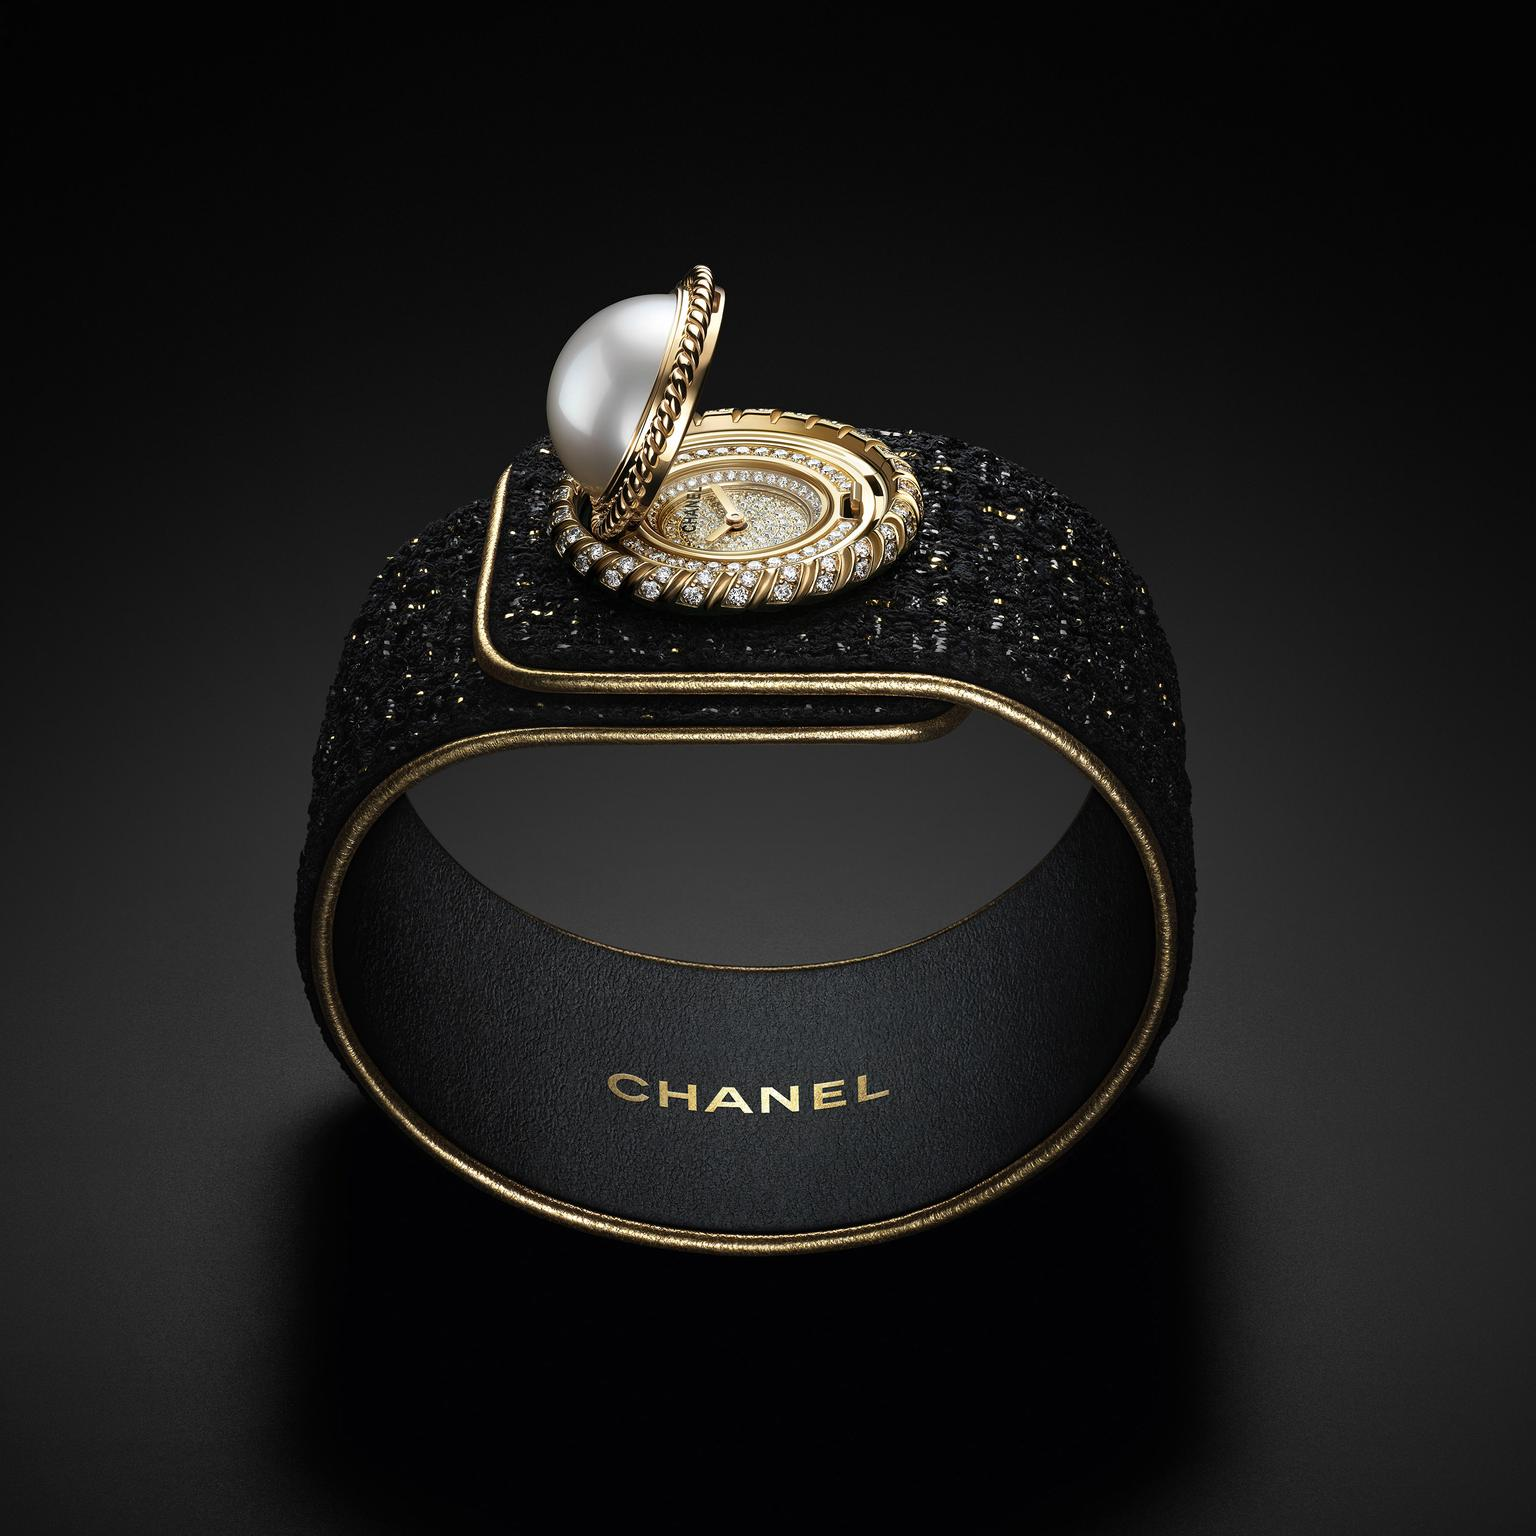 Chanel MADEMOISELLE PRIVÉ BOUTON Perle - 06